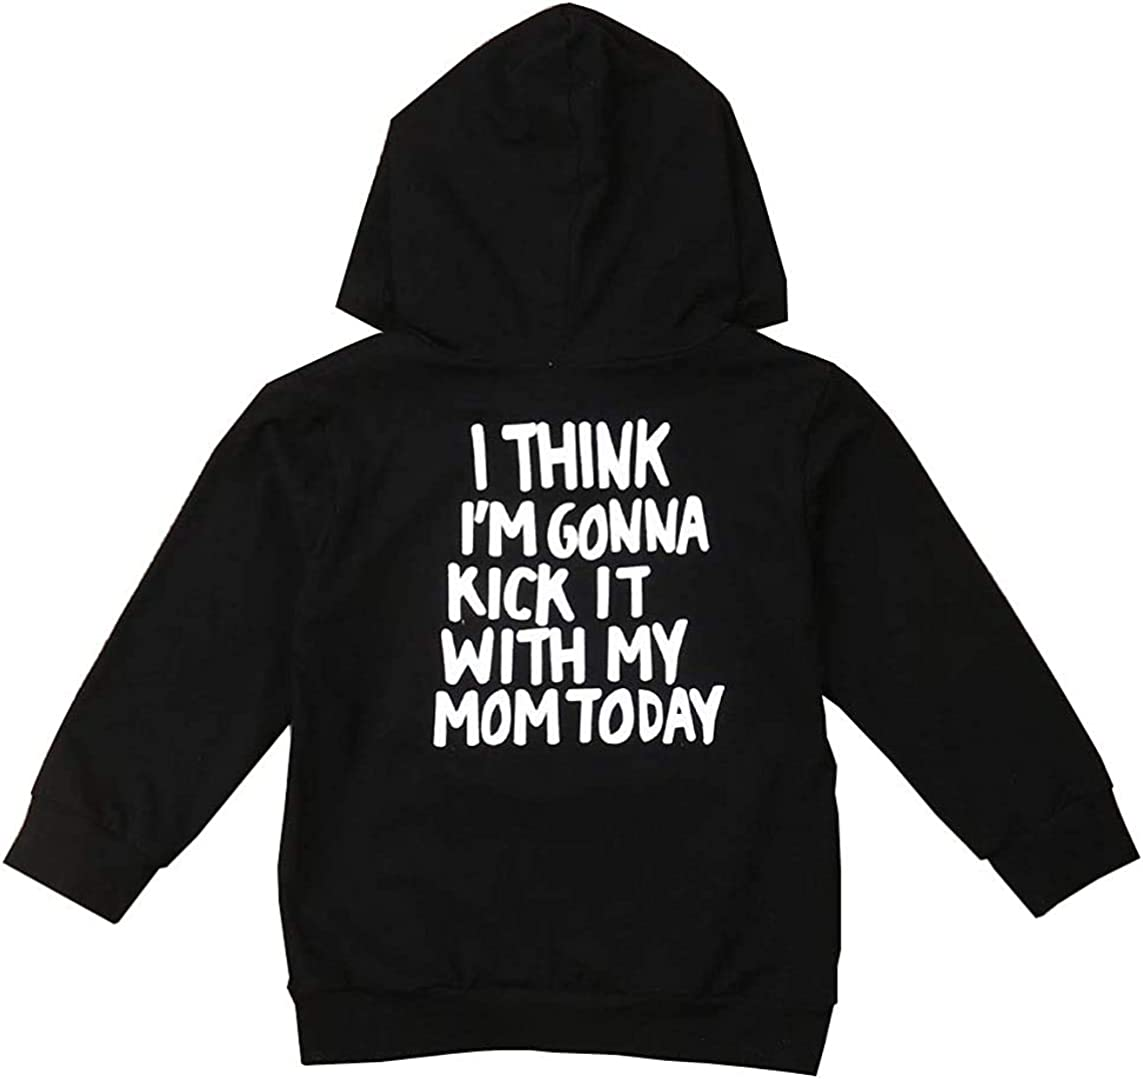 Toddler Boys Girls Hoodies Sweatshirt Casual Long Sleeve Pullover Sweater Tops Fall Winter Outdoor Outfit Clothes (Mom Pullover Hoodies,3-4T)